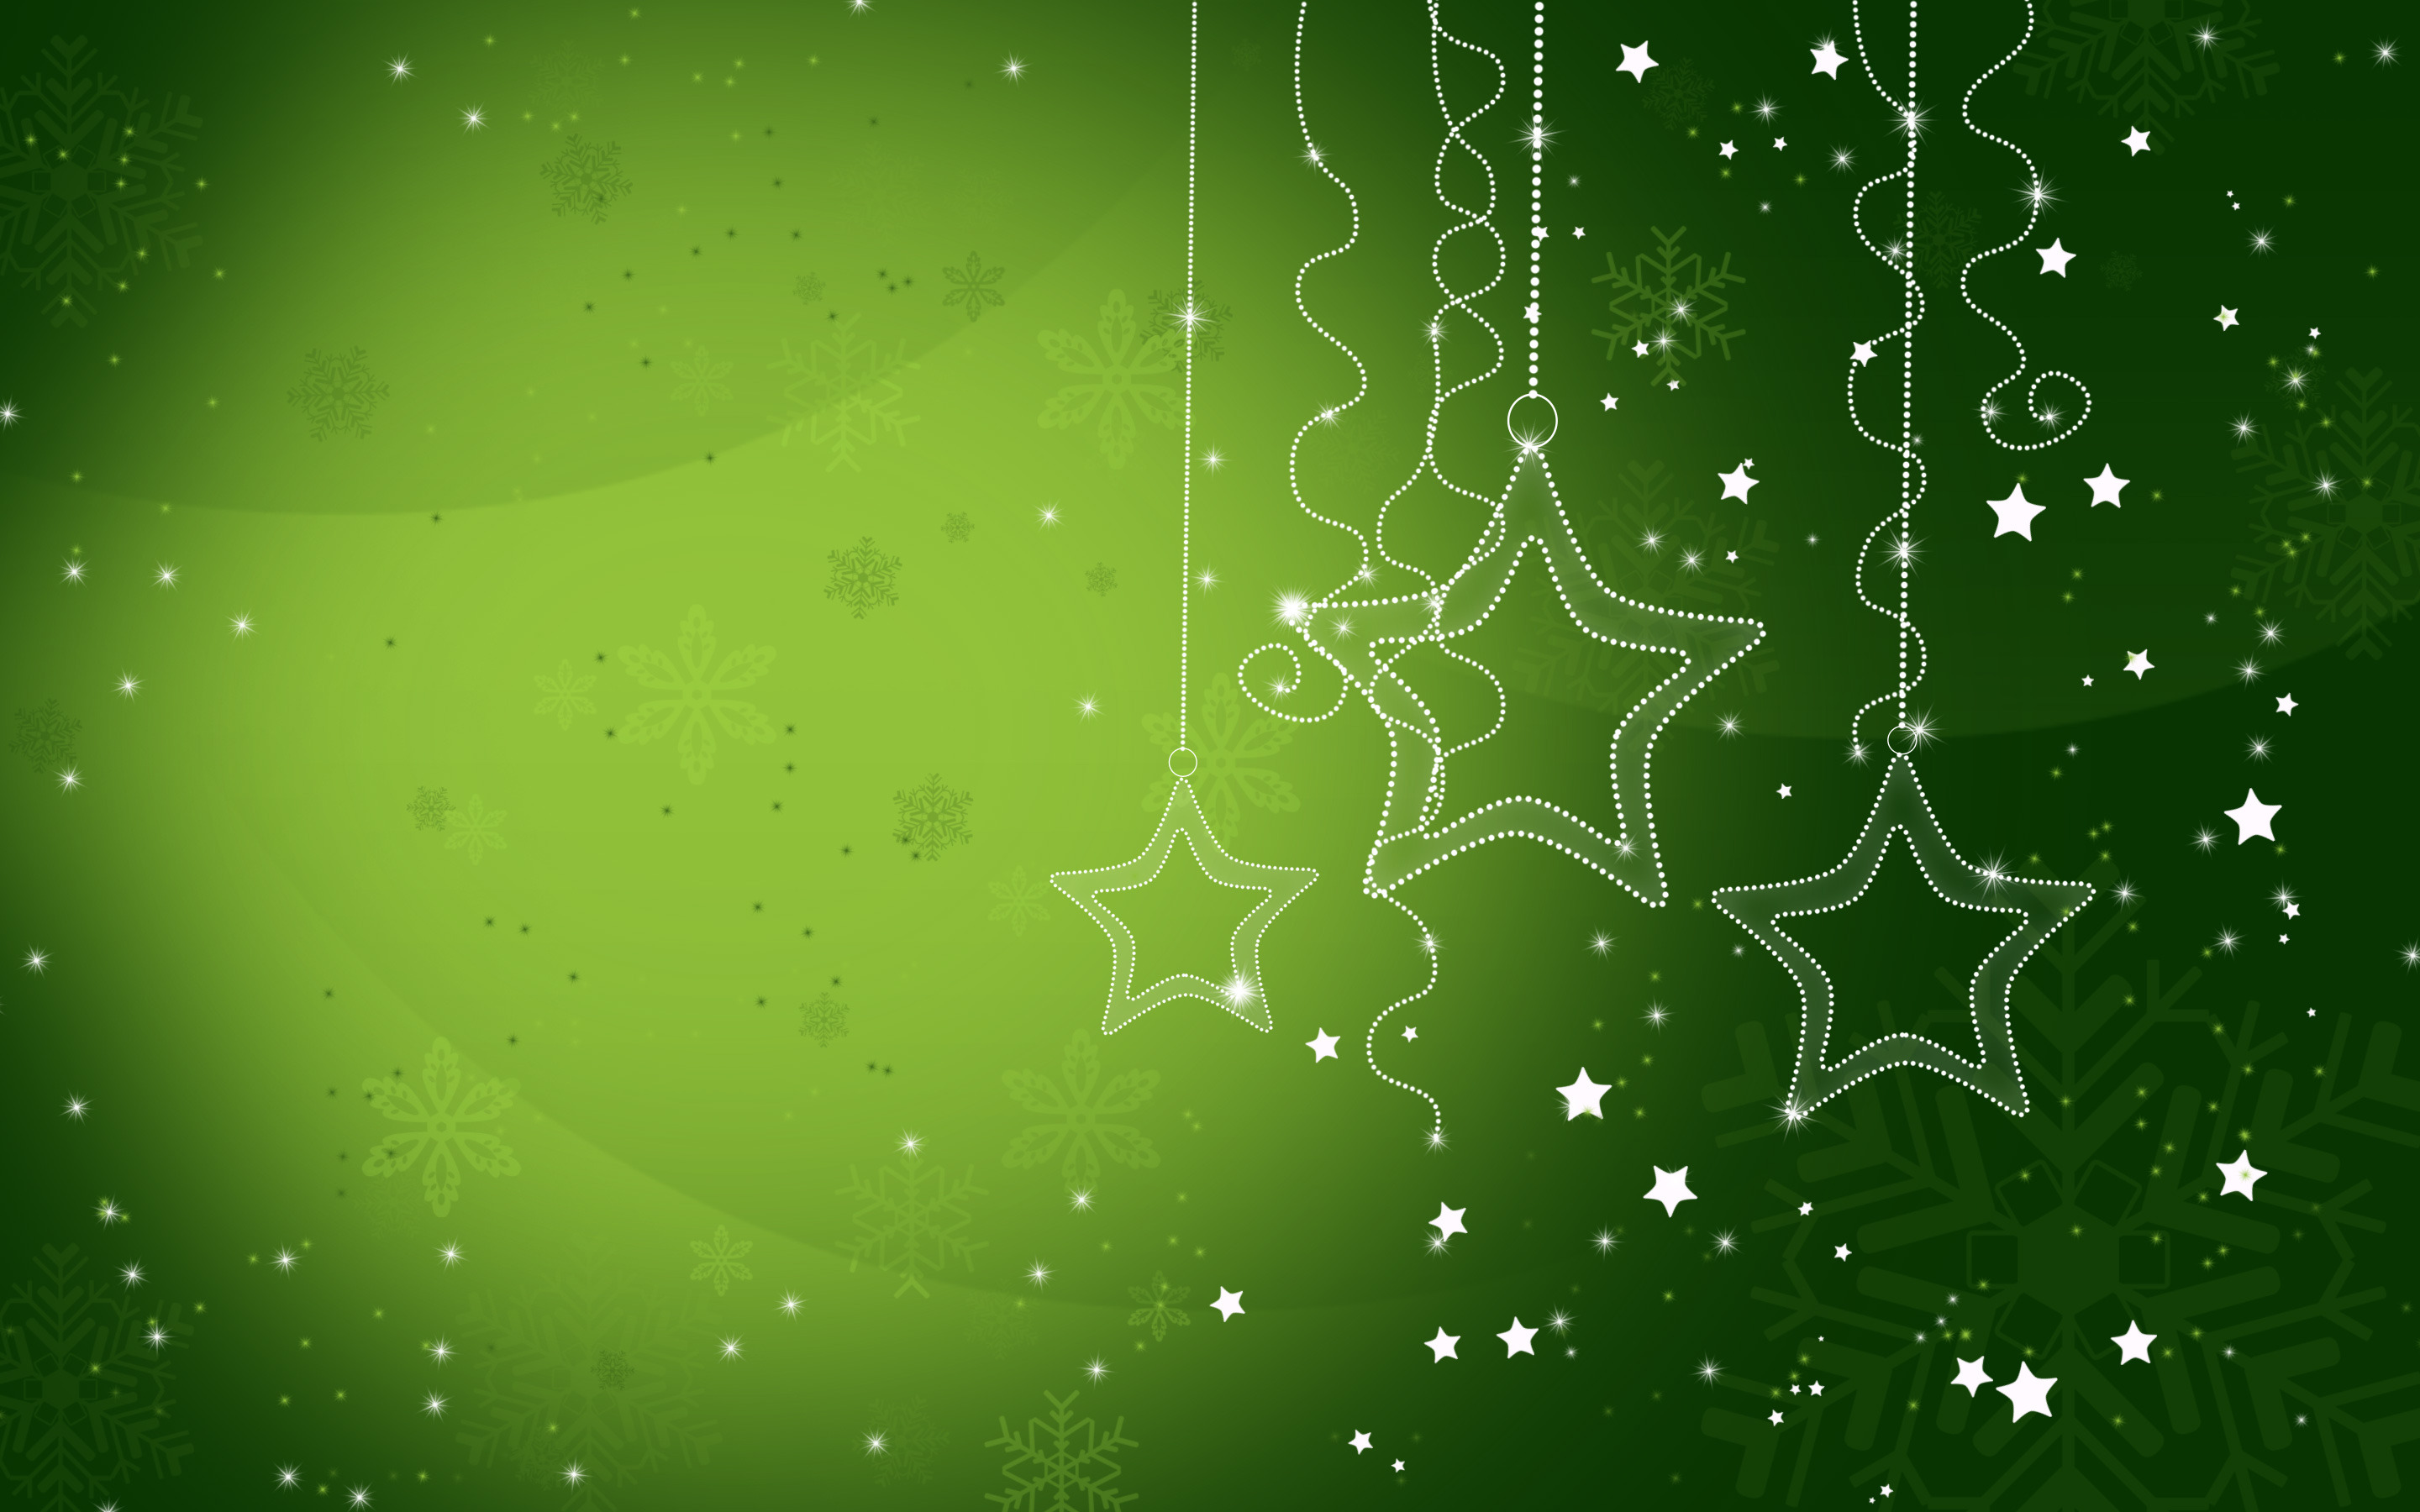 Christmas Wallpaper Green